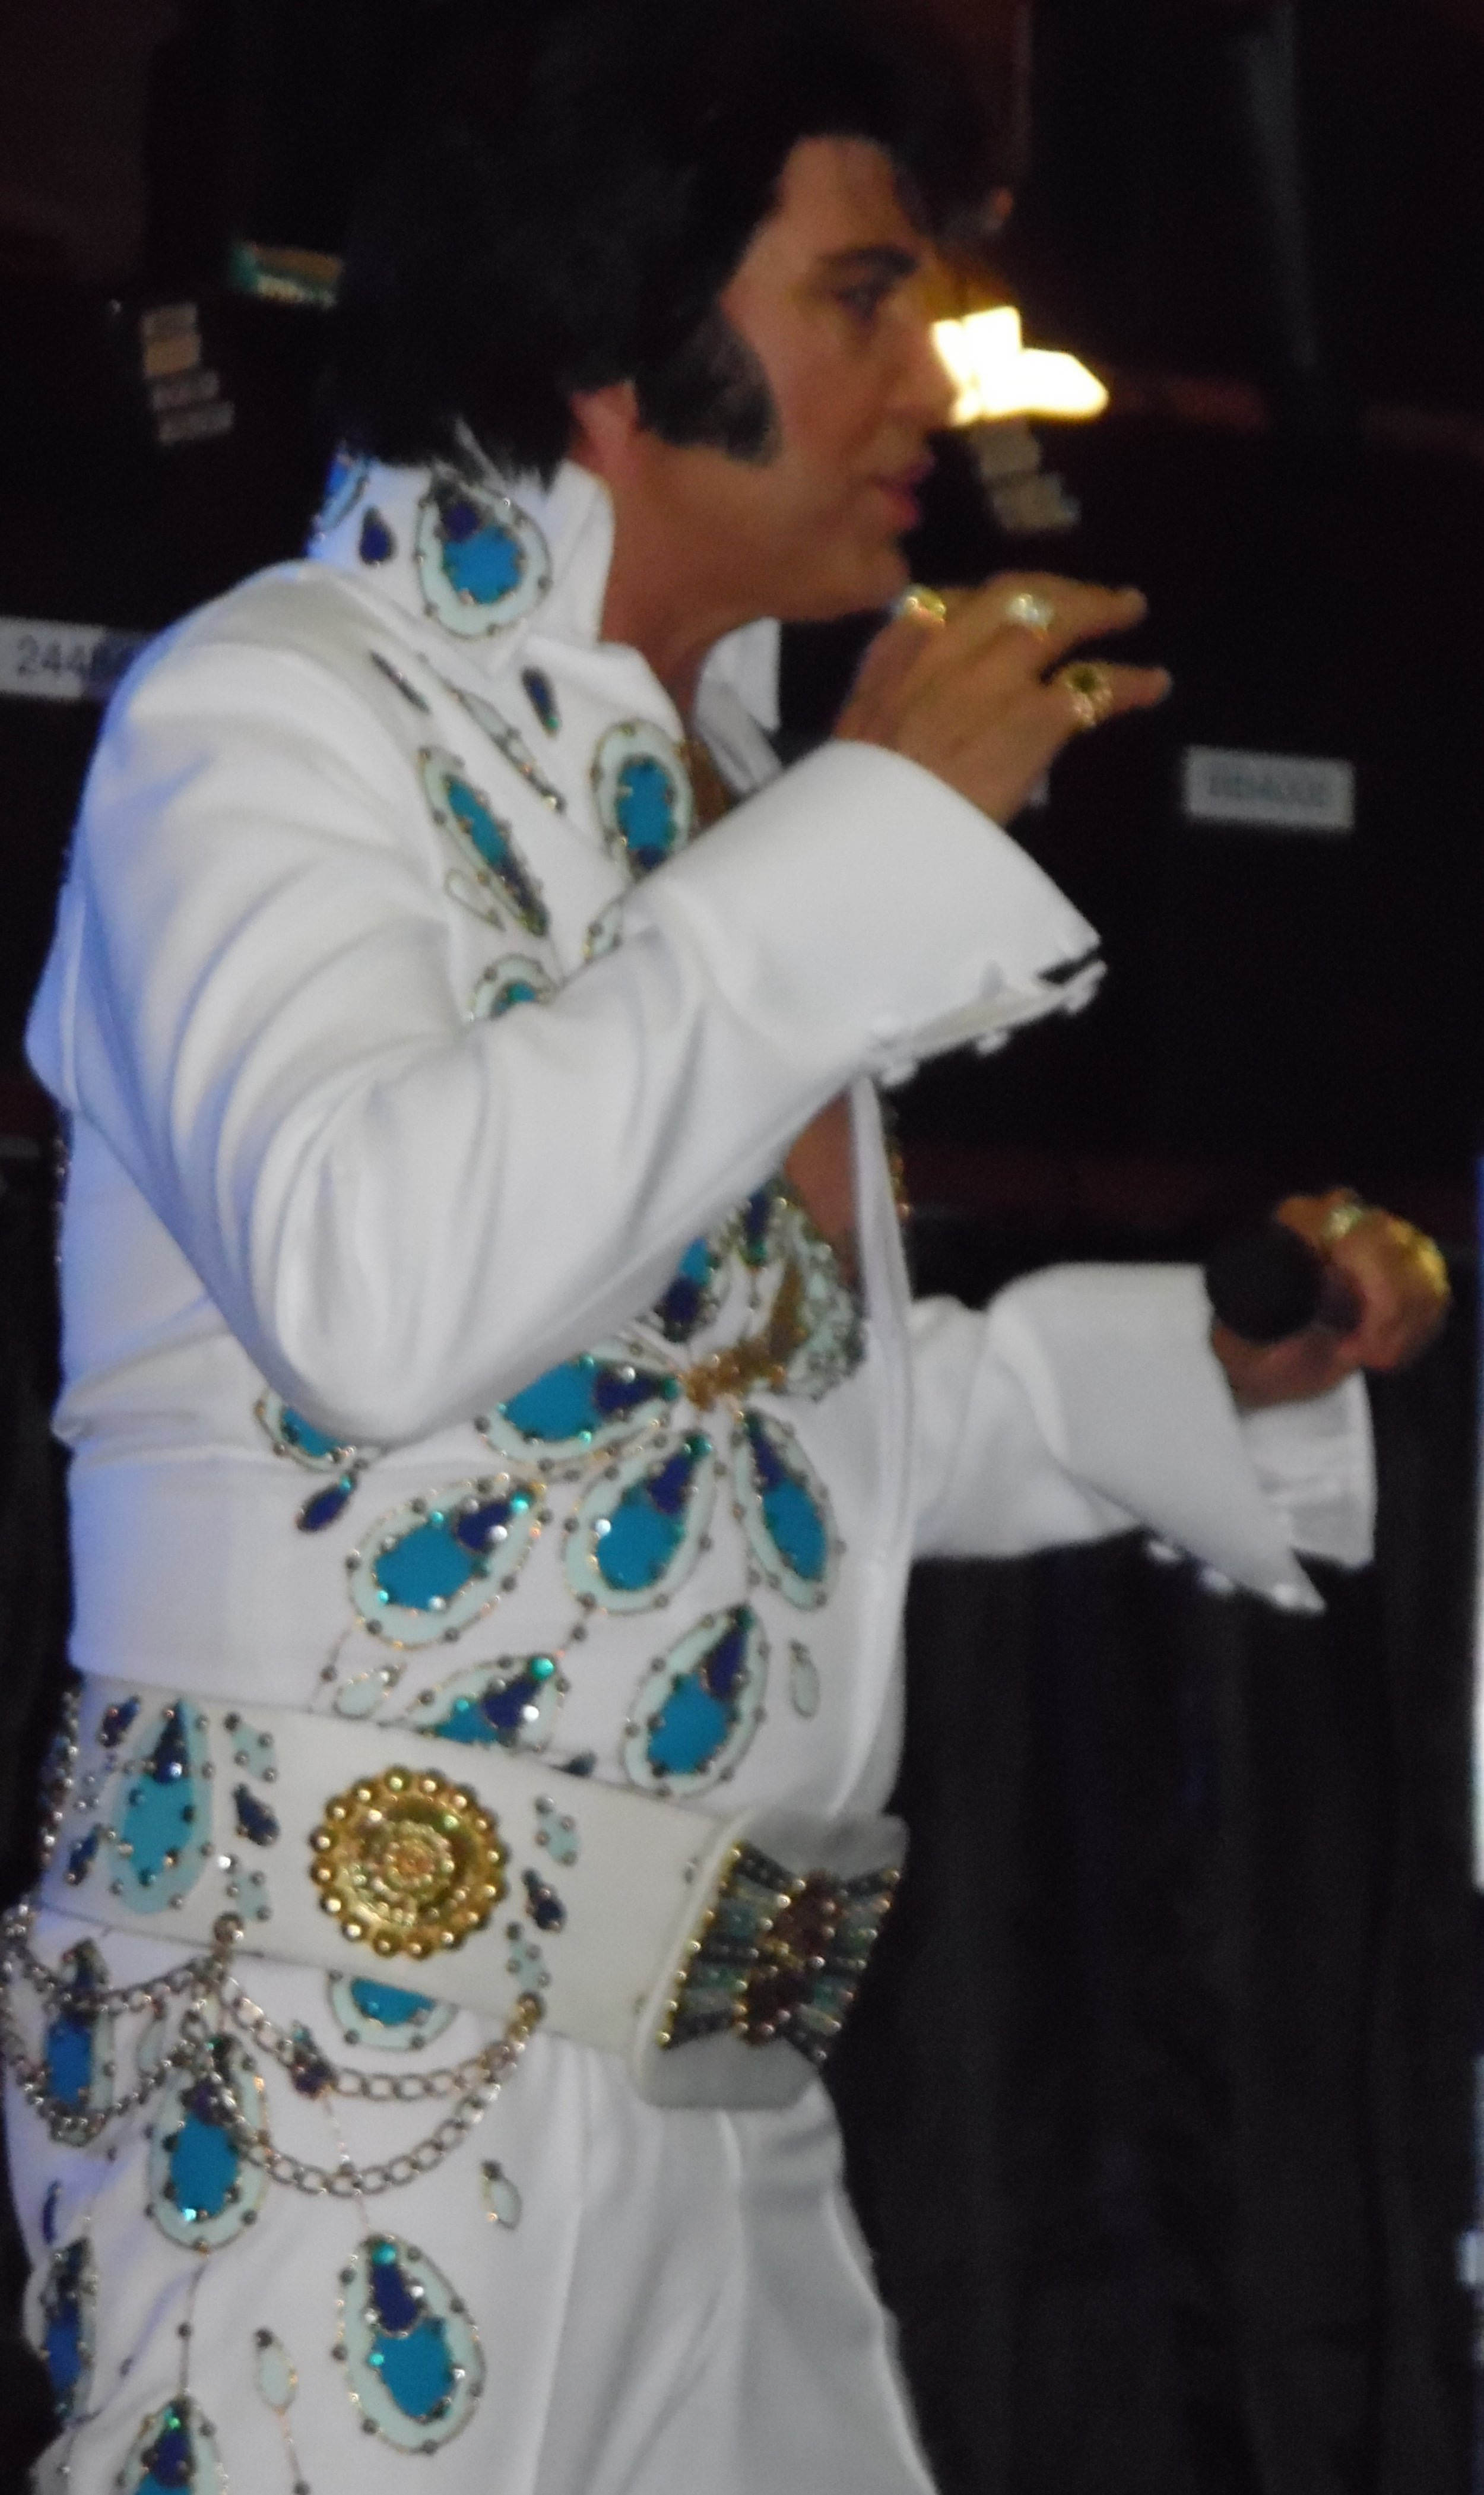 ETA  Sylvain Leduc  in concert at Flamboro Downs, Flamborough, ON, Friday September 29th, 2017. The Peacock jumpsuit was the first of three that Sylvain wore during his amazing 3hr concert.